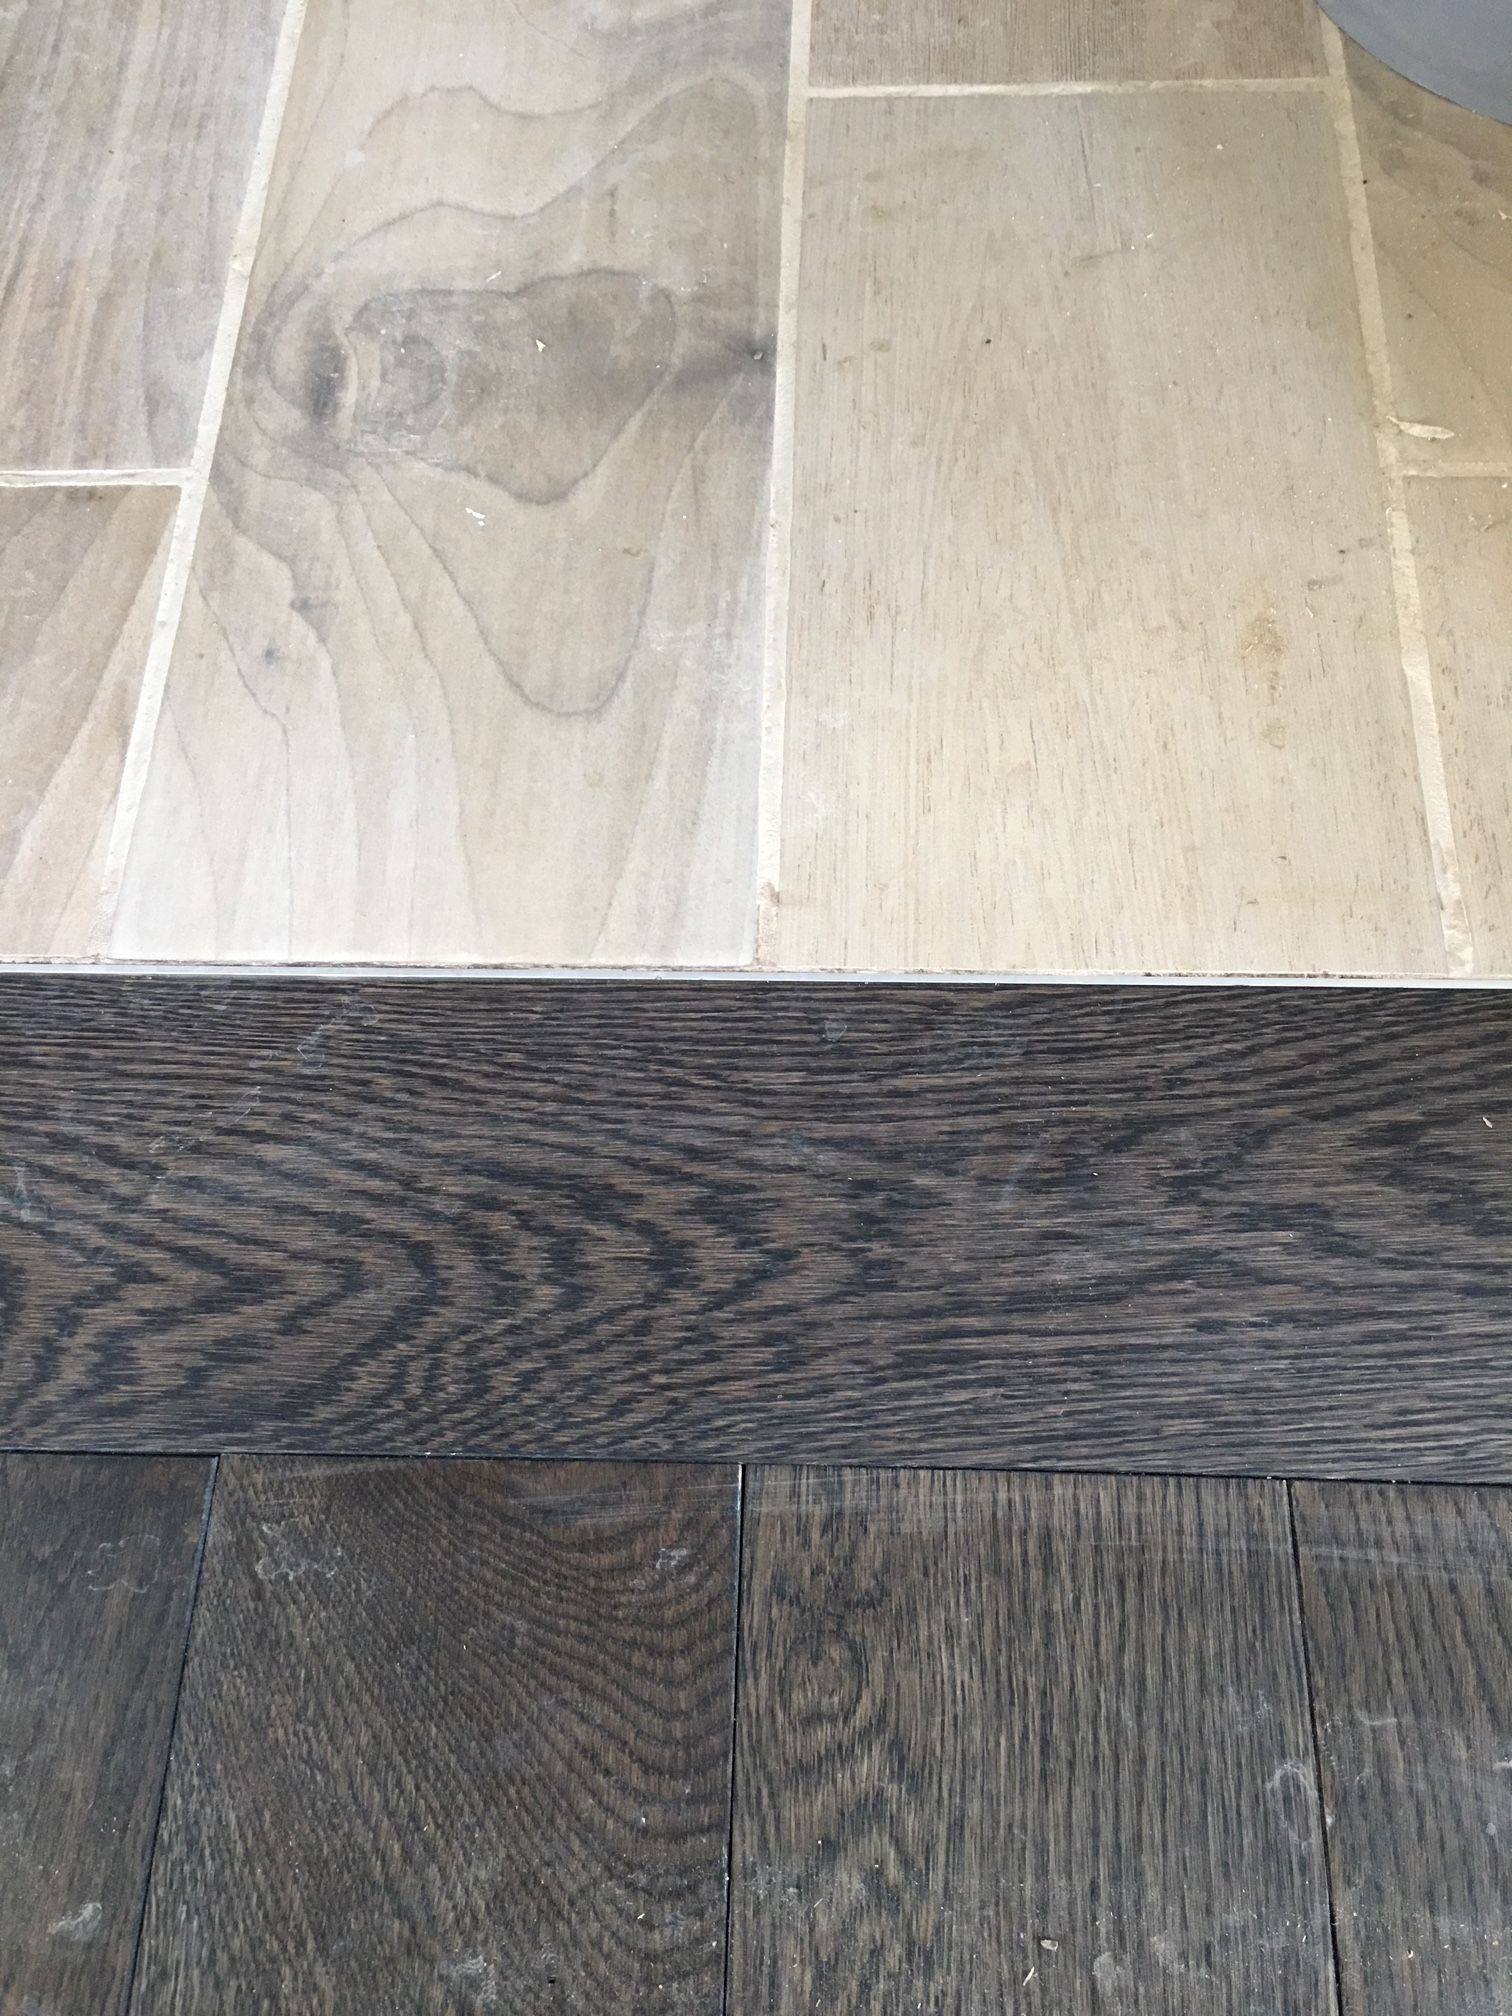 12+ Floor transition strips wood to tile ideas in 2021